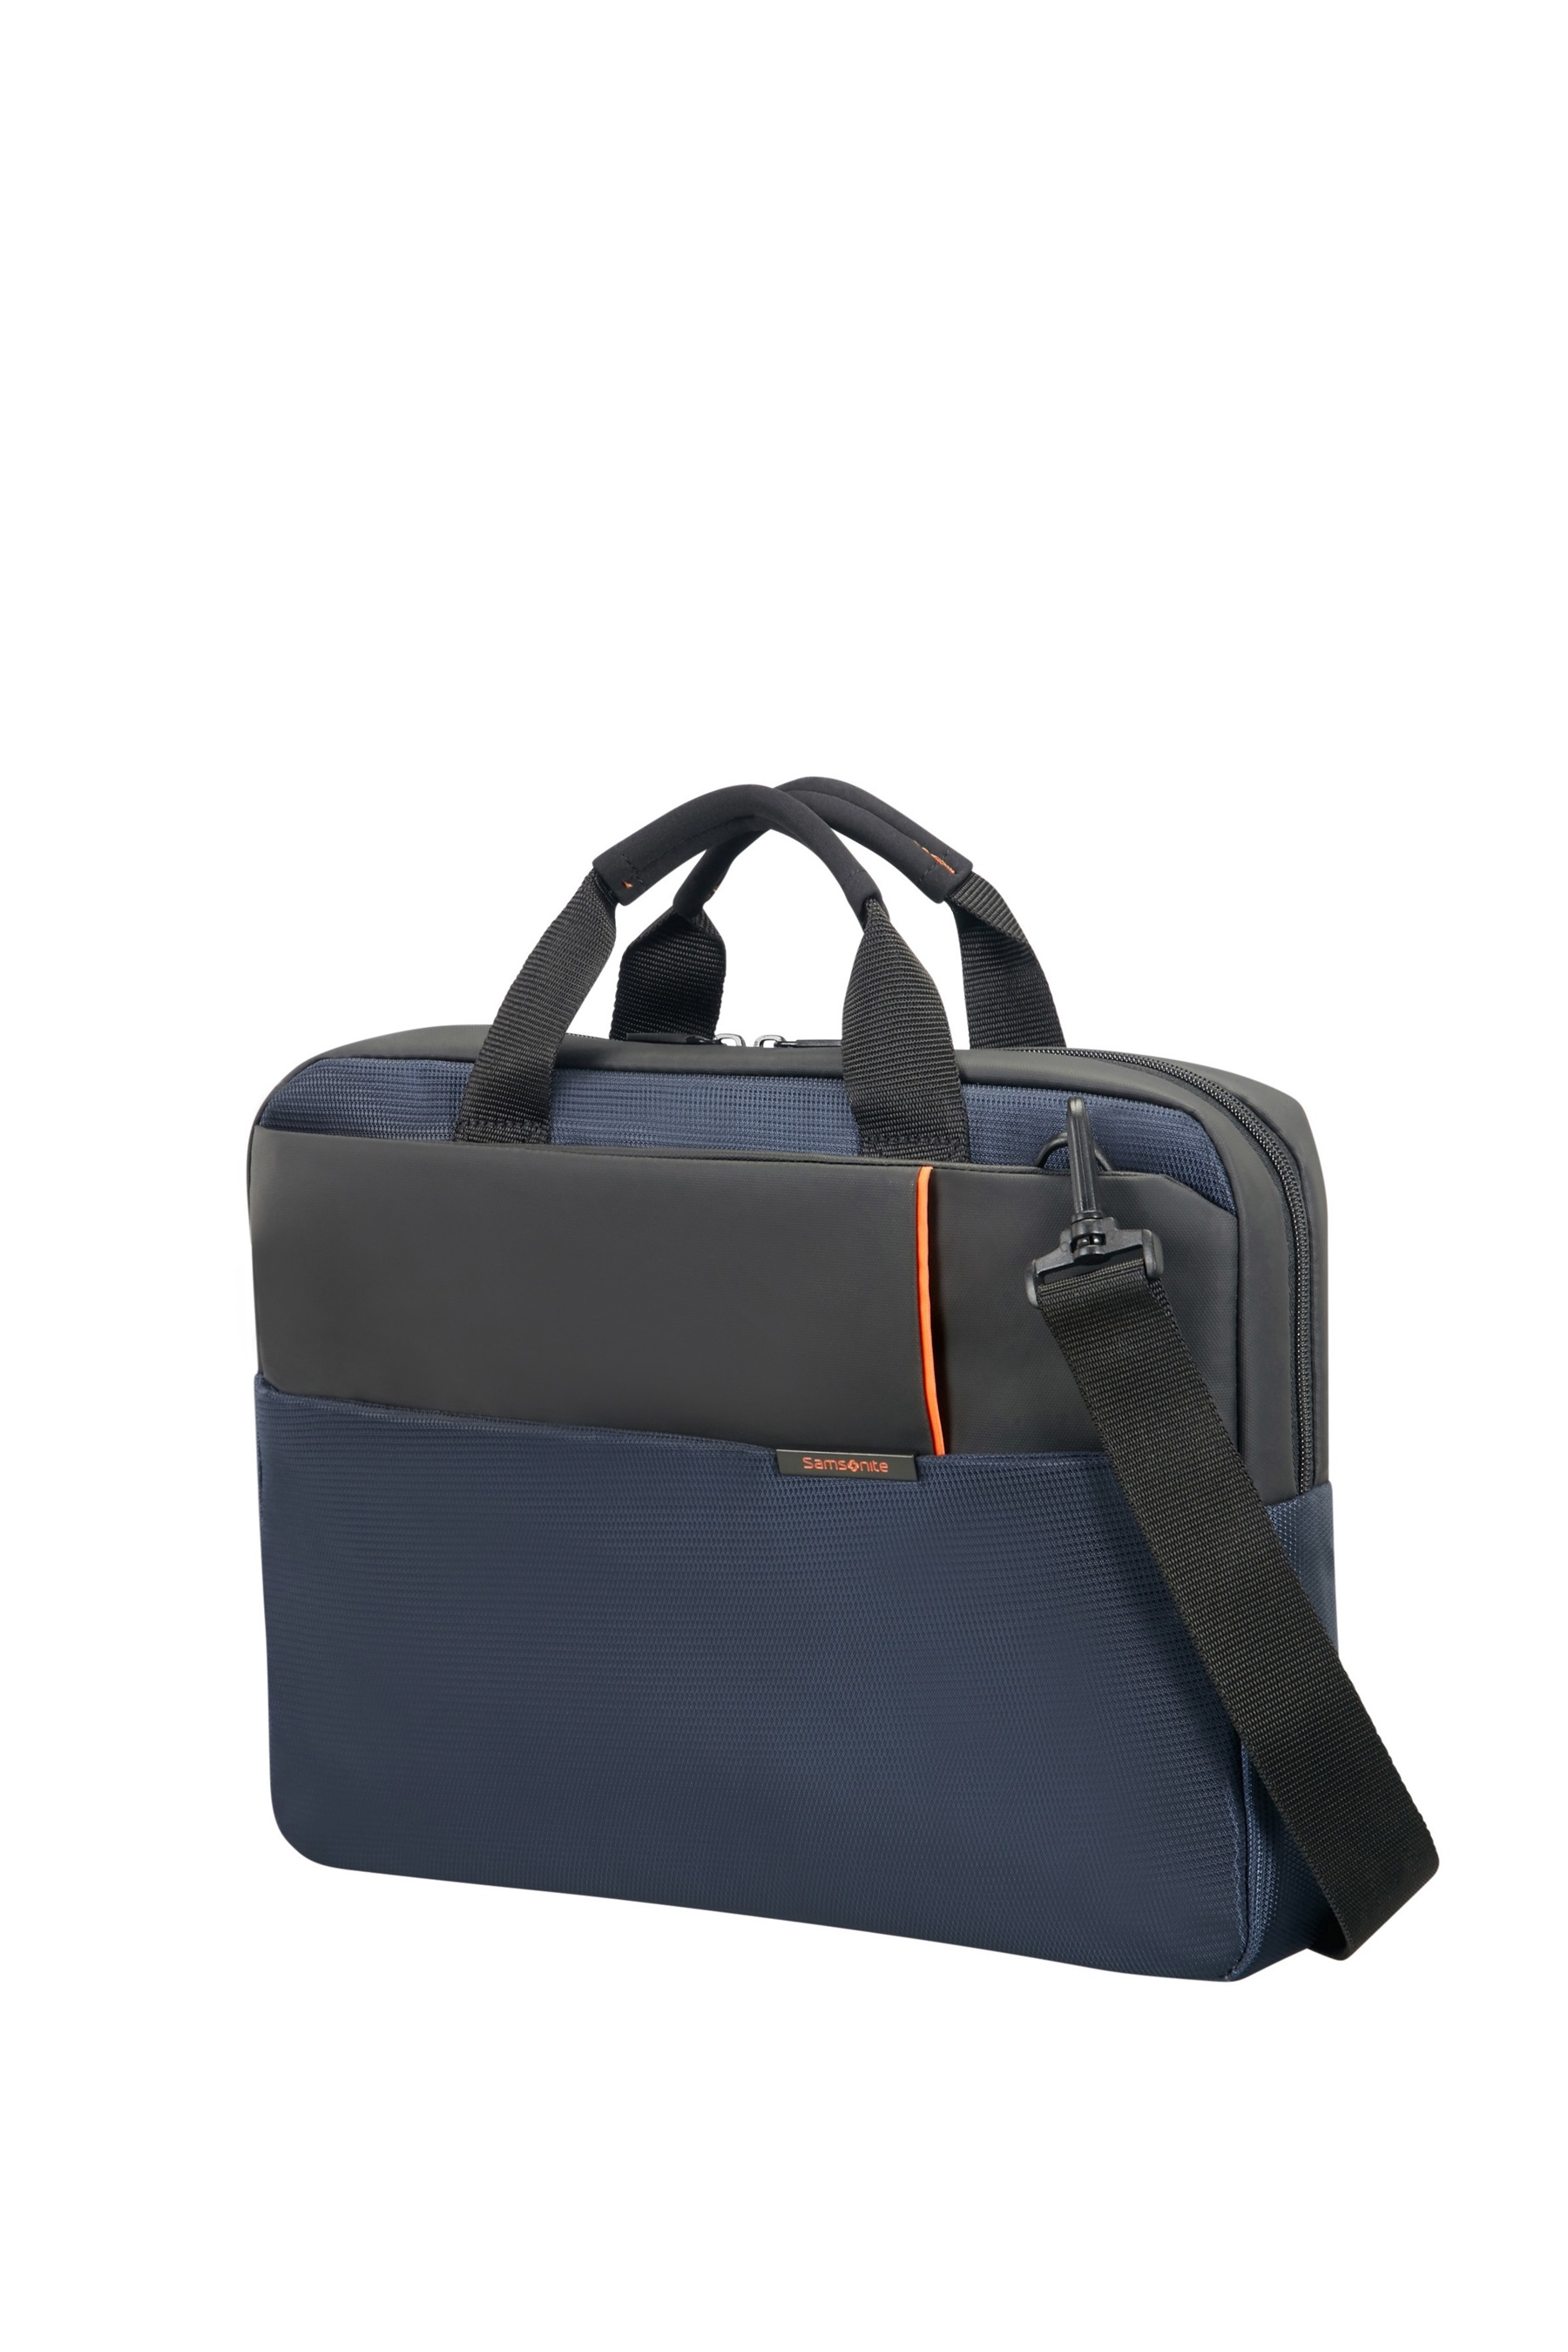 SAMSONITE - BORSE NOTEBOOK - 5414847720642